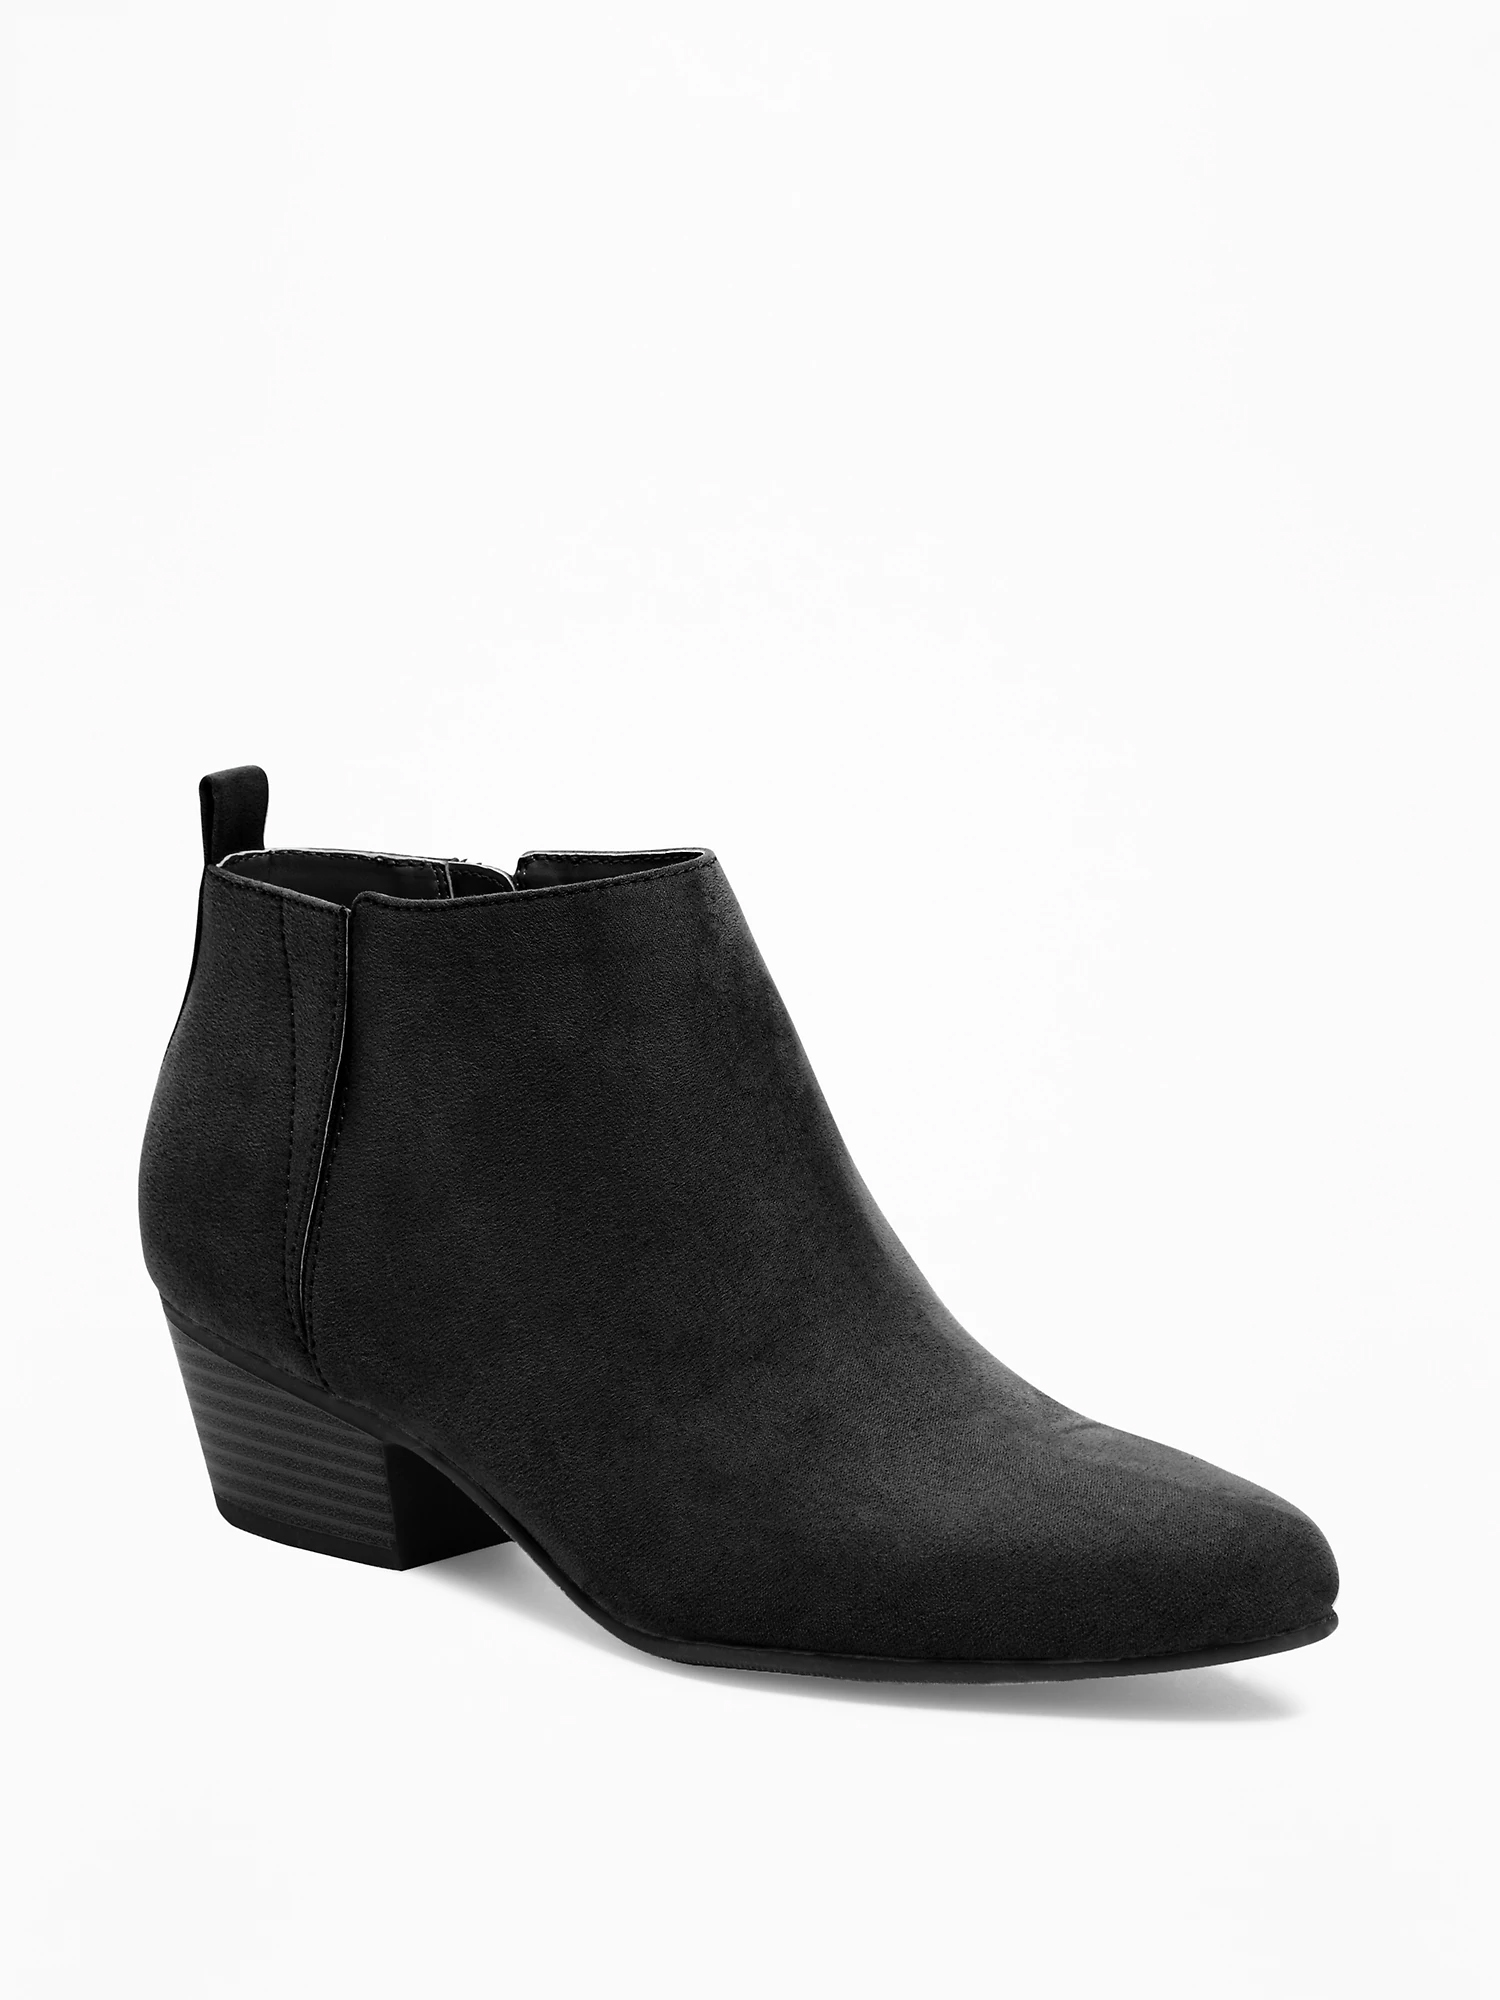 Sueded Ankle Boots for Women - Black